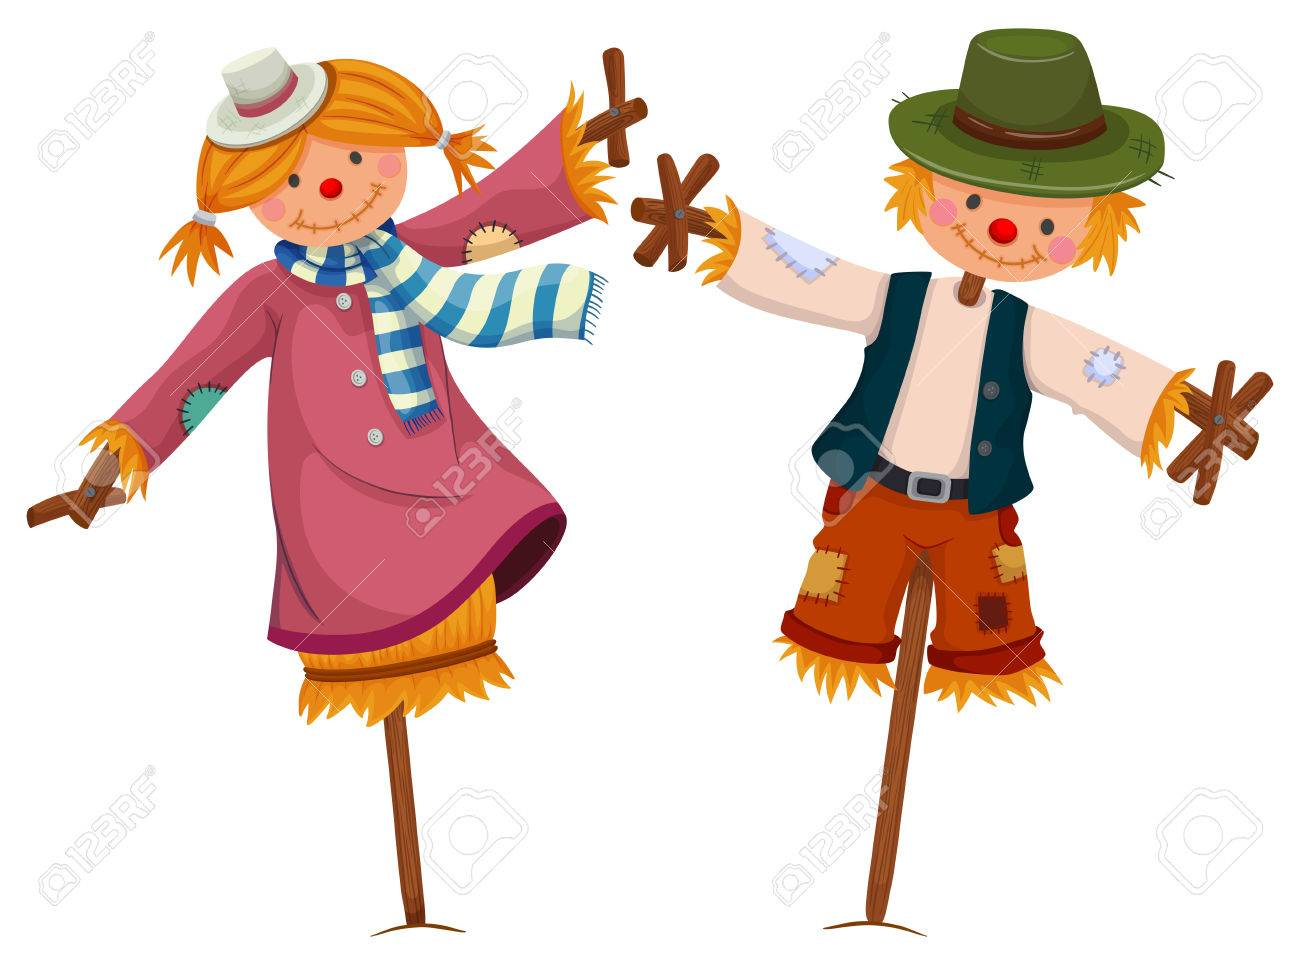 hight resolution of two scarecrows look like girl and boy illustration stock vector 61180499